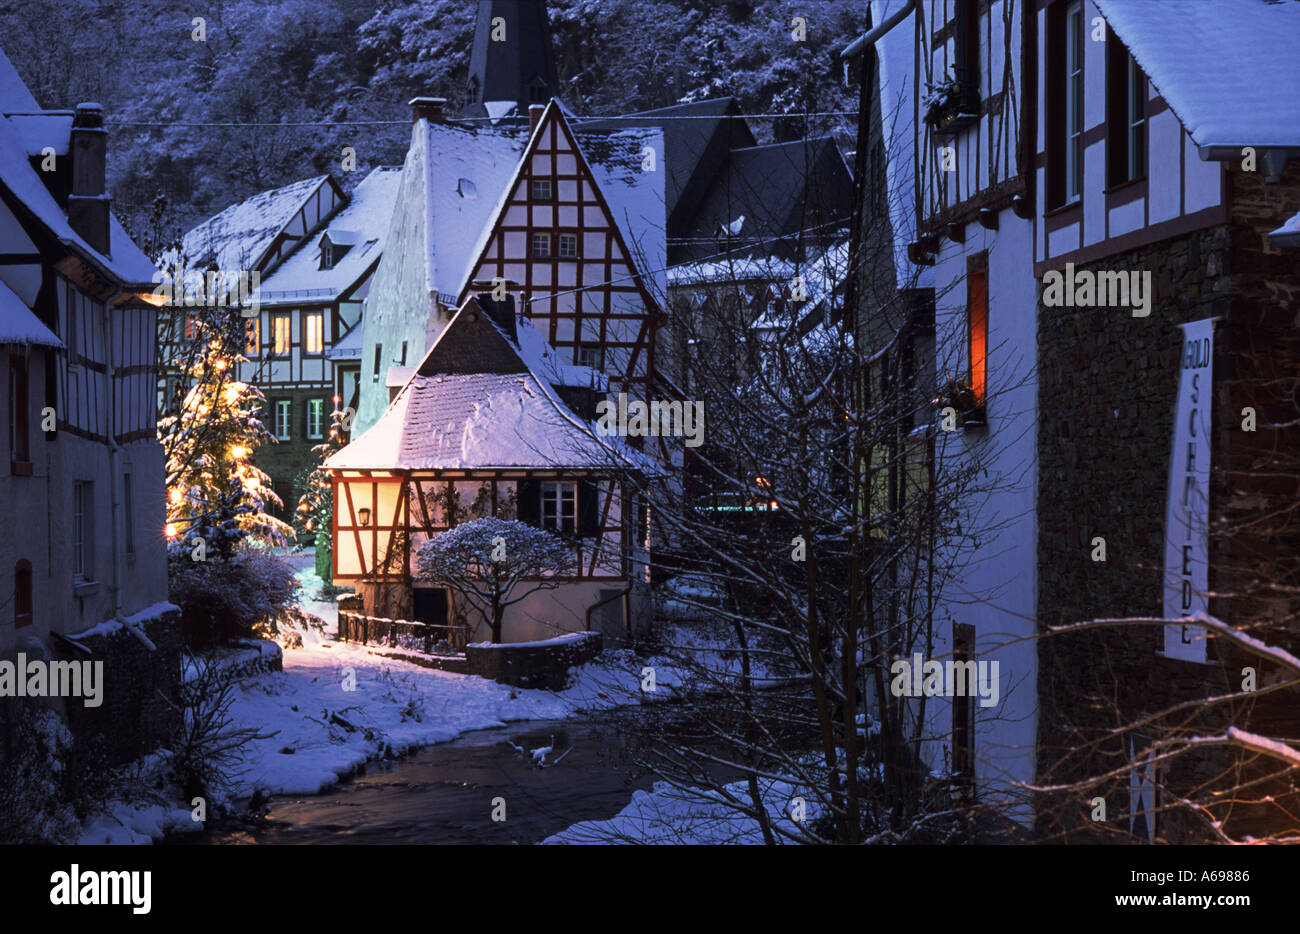 Frozen Animated Wallpaper Christmas Day Time At Monreal Eifel Germany Tree Winter